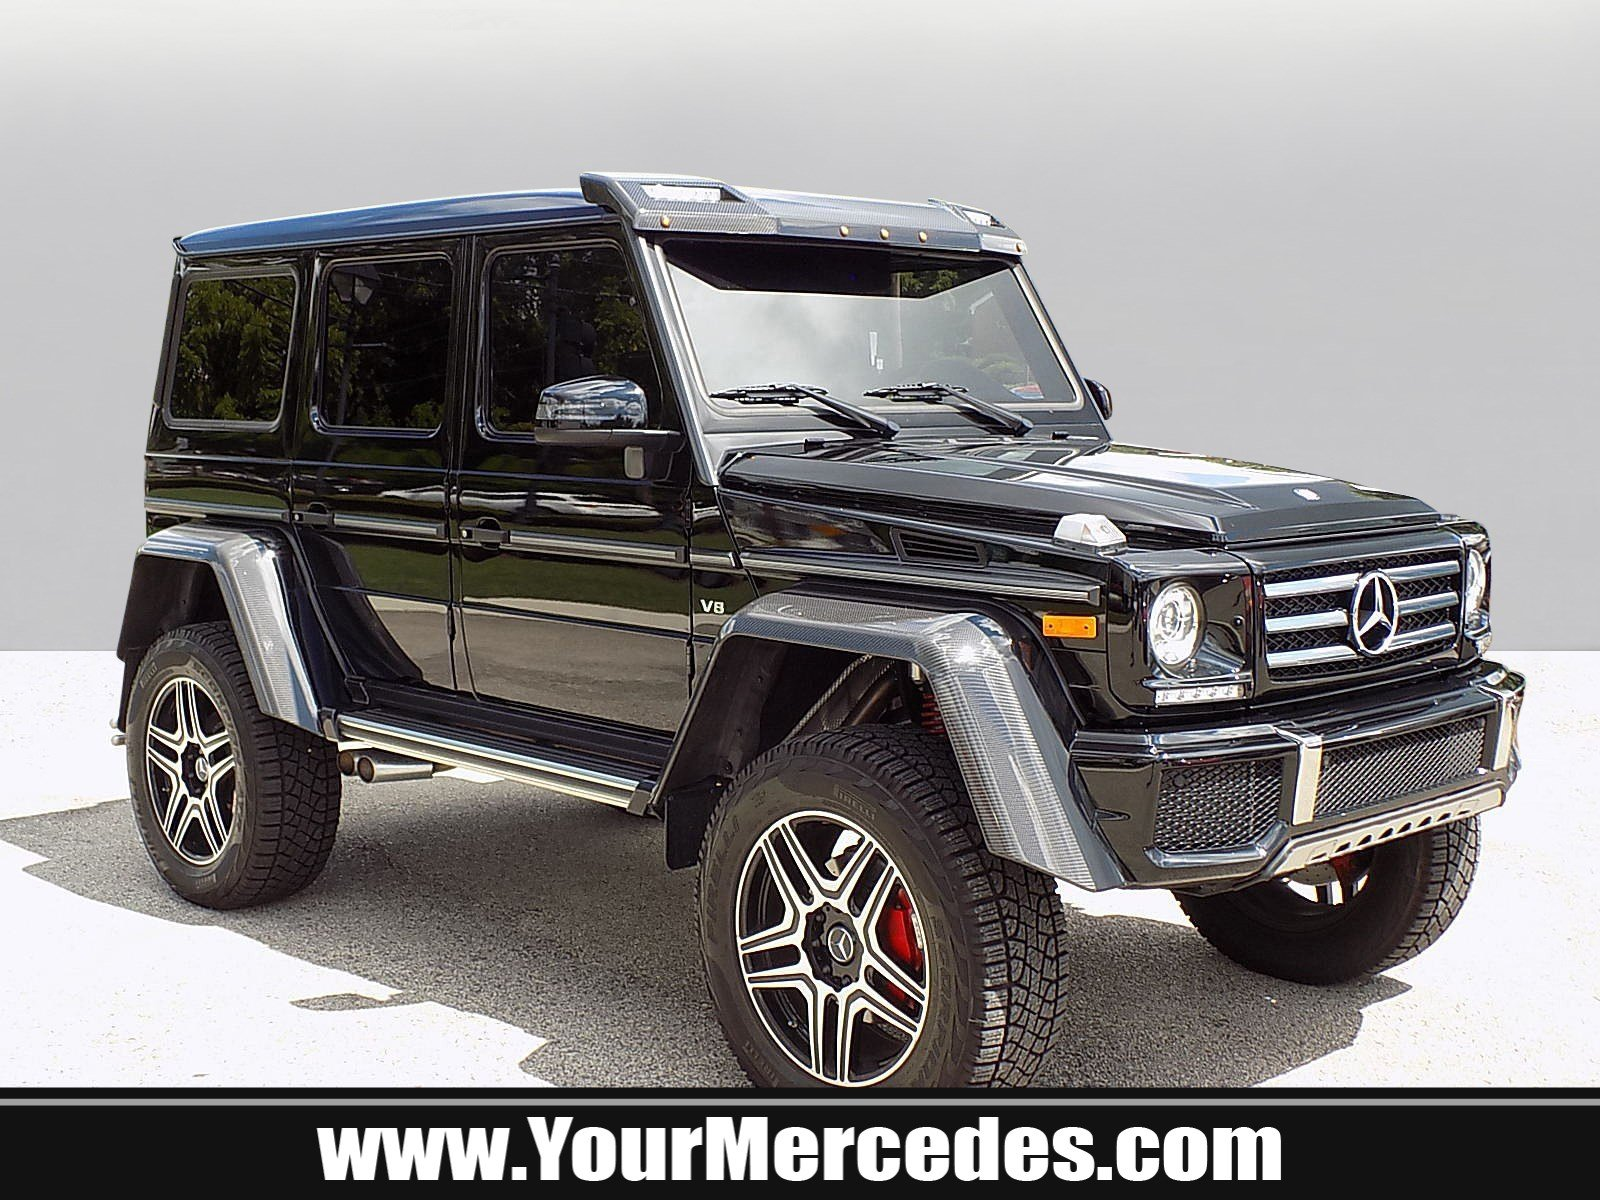 Pre Owned 2017 Mercedes Benz G Class G 550 4D Sport Utility in Egg